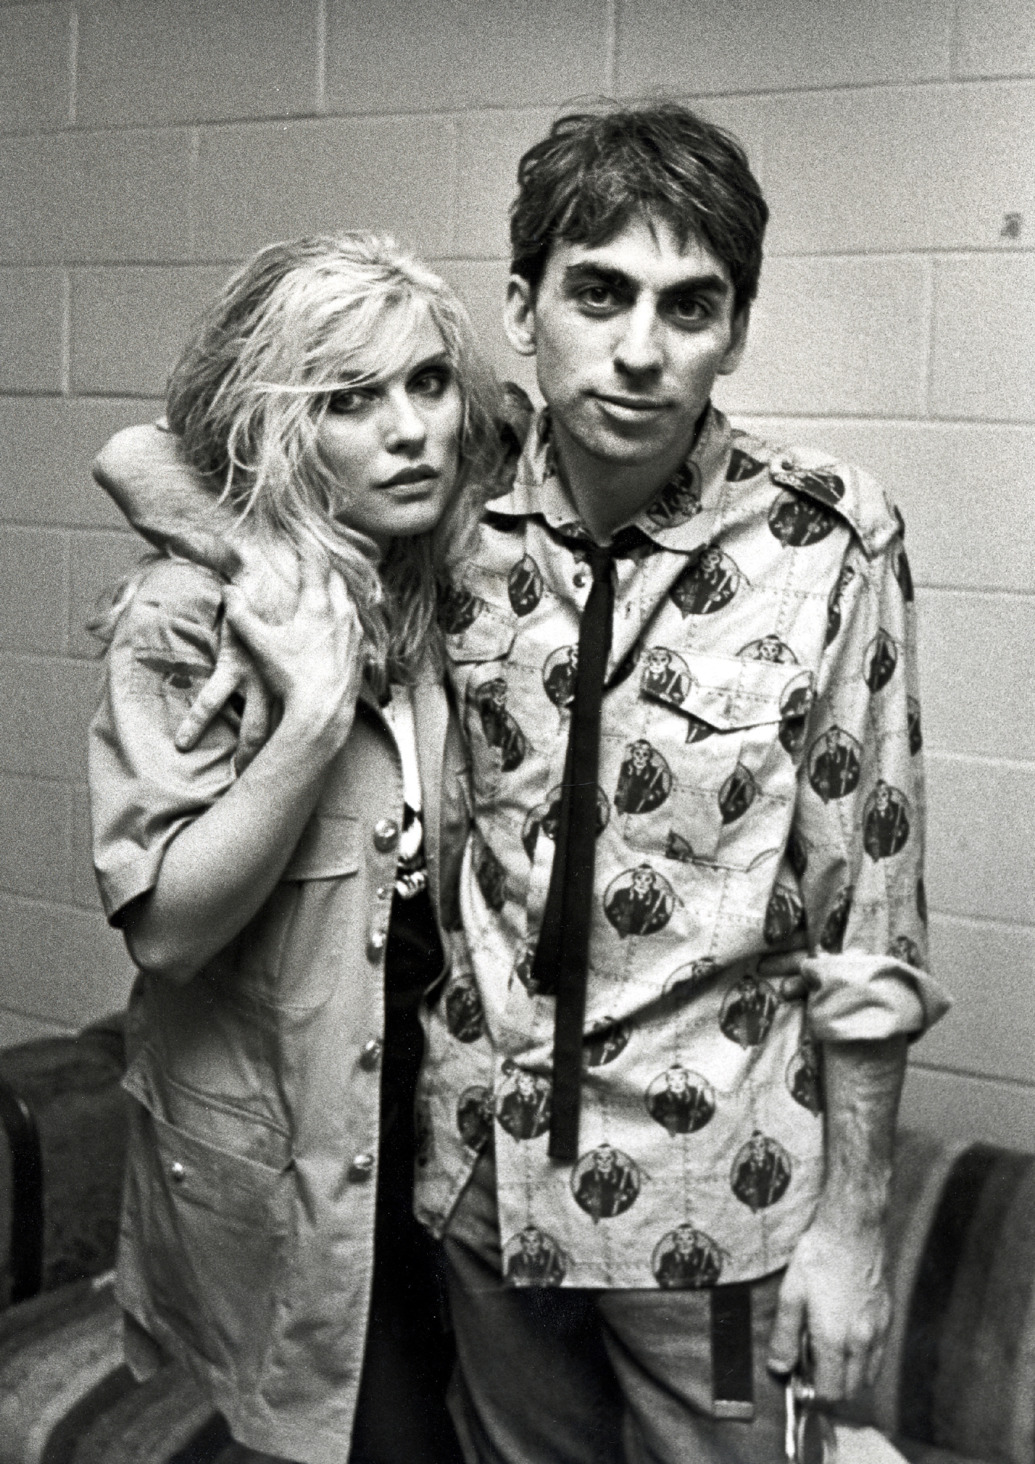 Chris Stein is hugging Debbie Harry with one arm while they both look to the camera